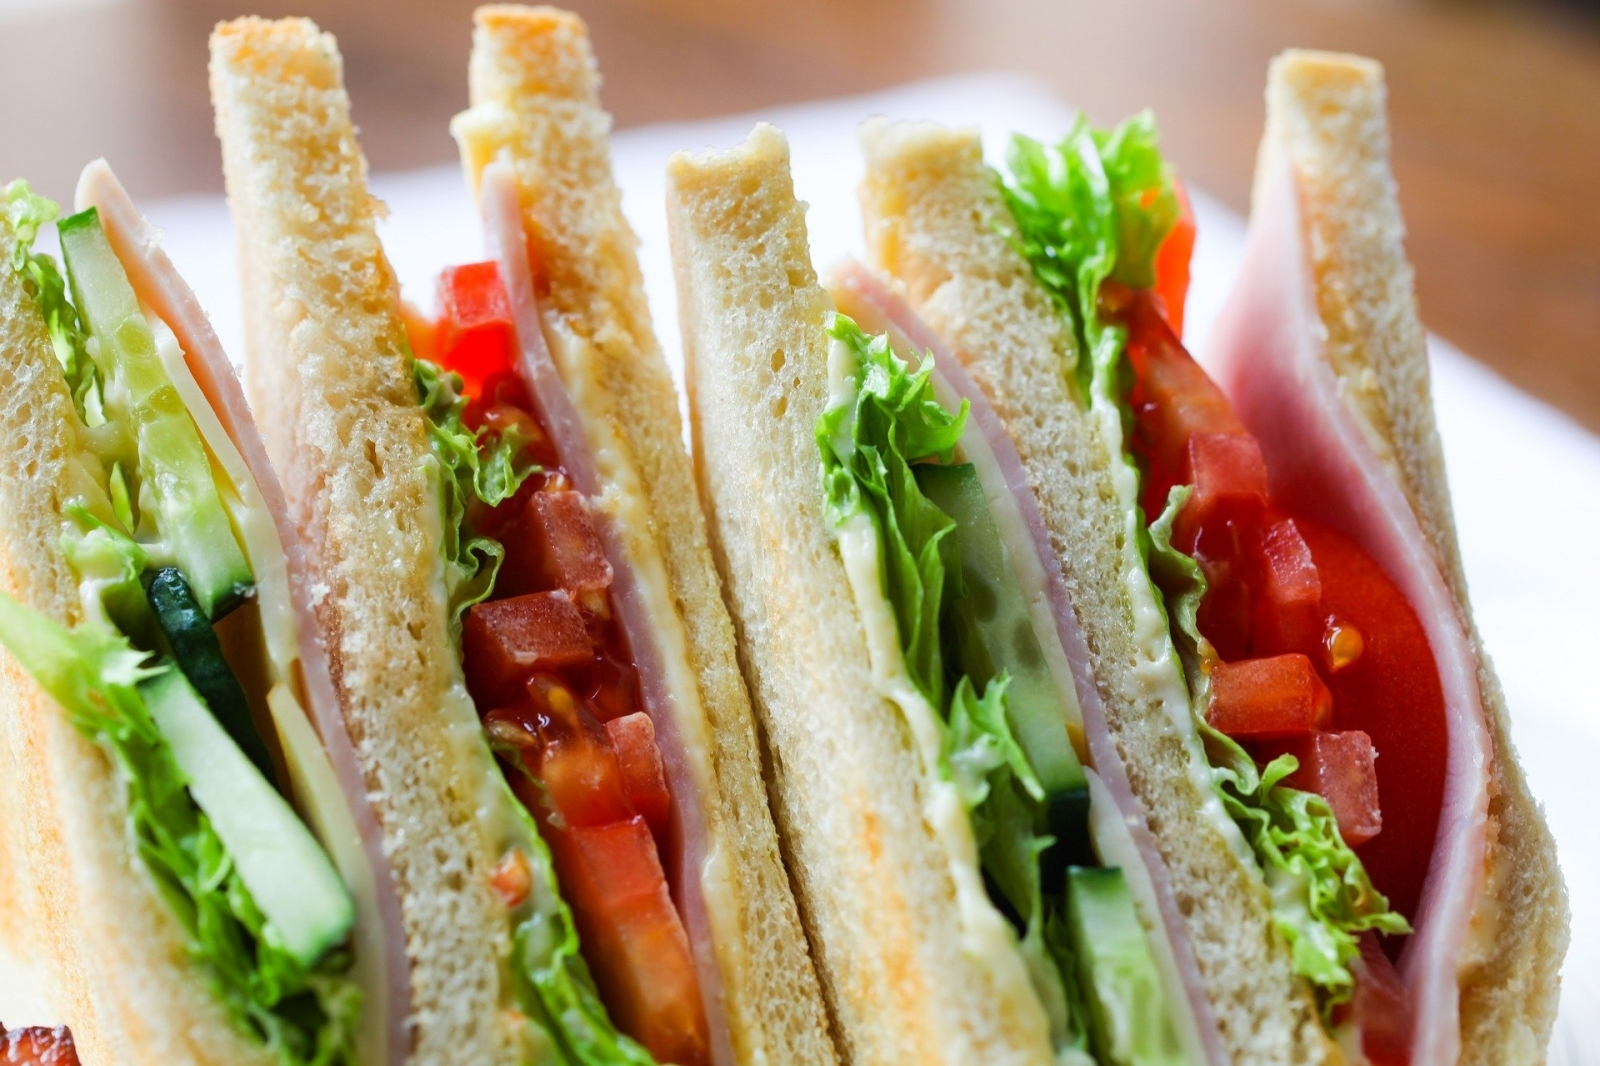 United Kingdom  sandwich habit 'as bad for the environment as eight million cars'